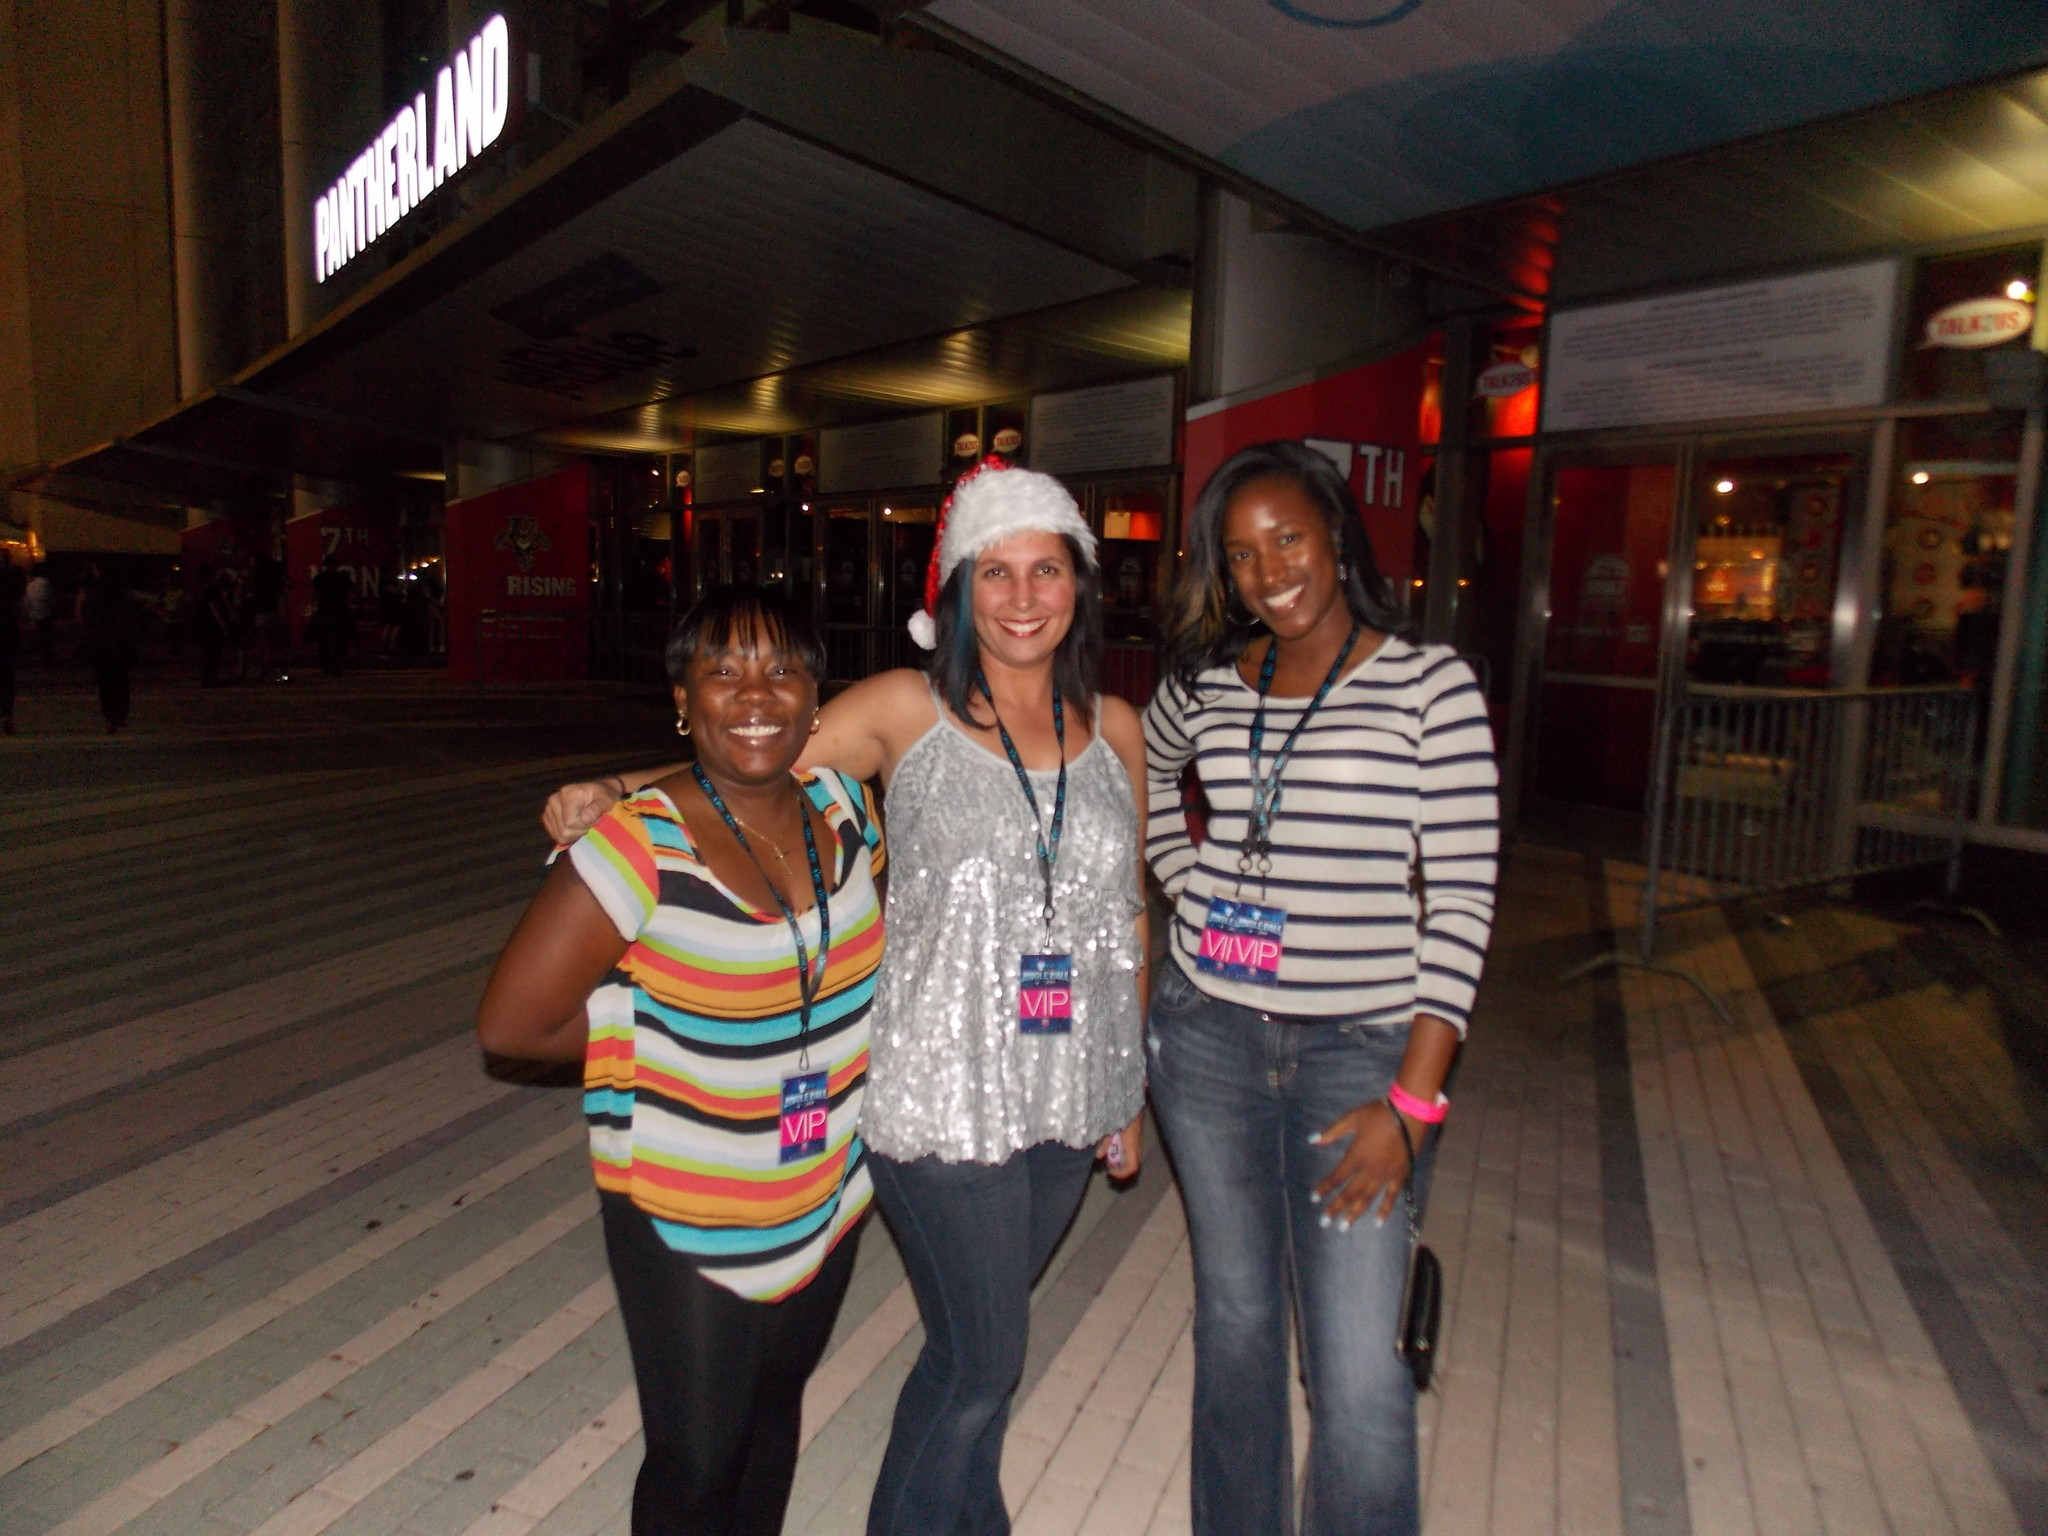 Jingle Ball at BB&T Center in Sunrise - Jingle Ball fun